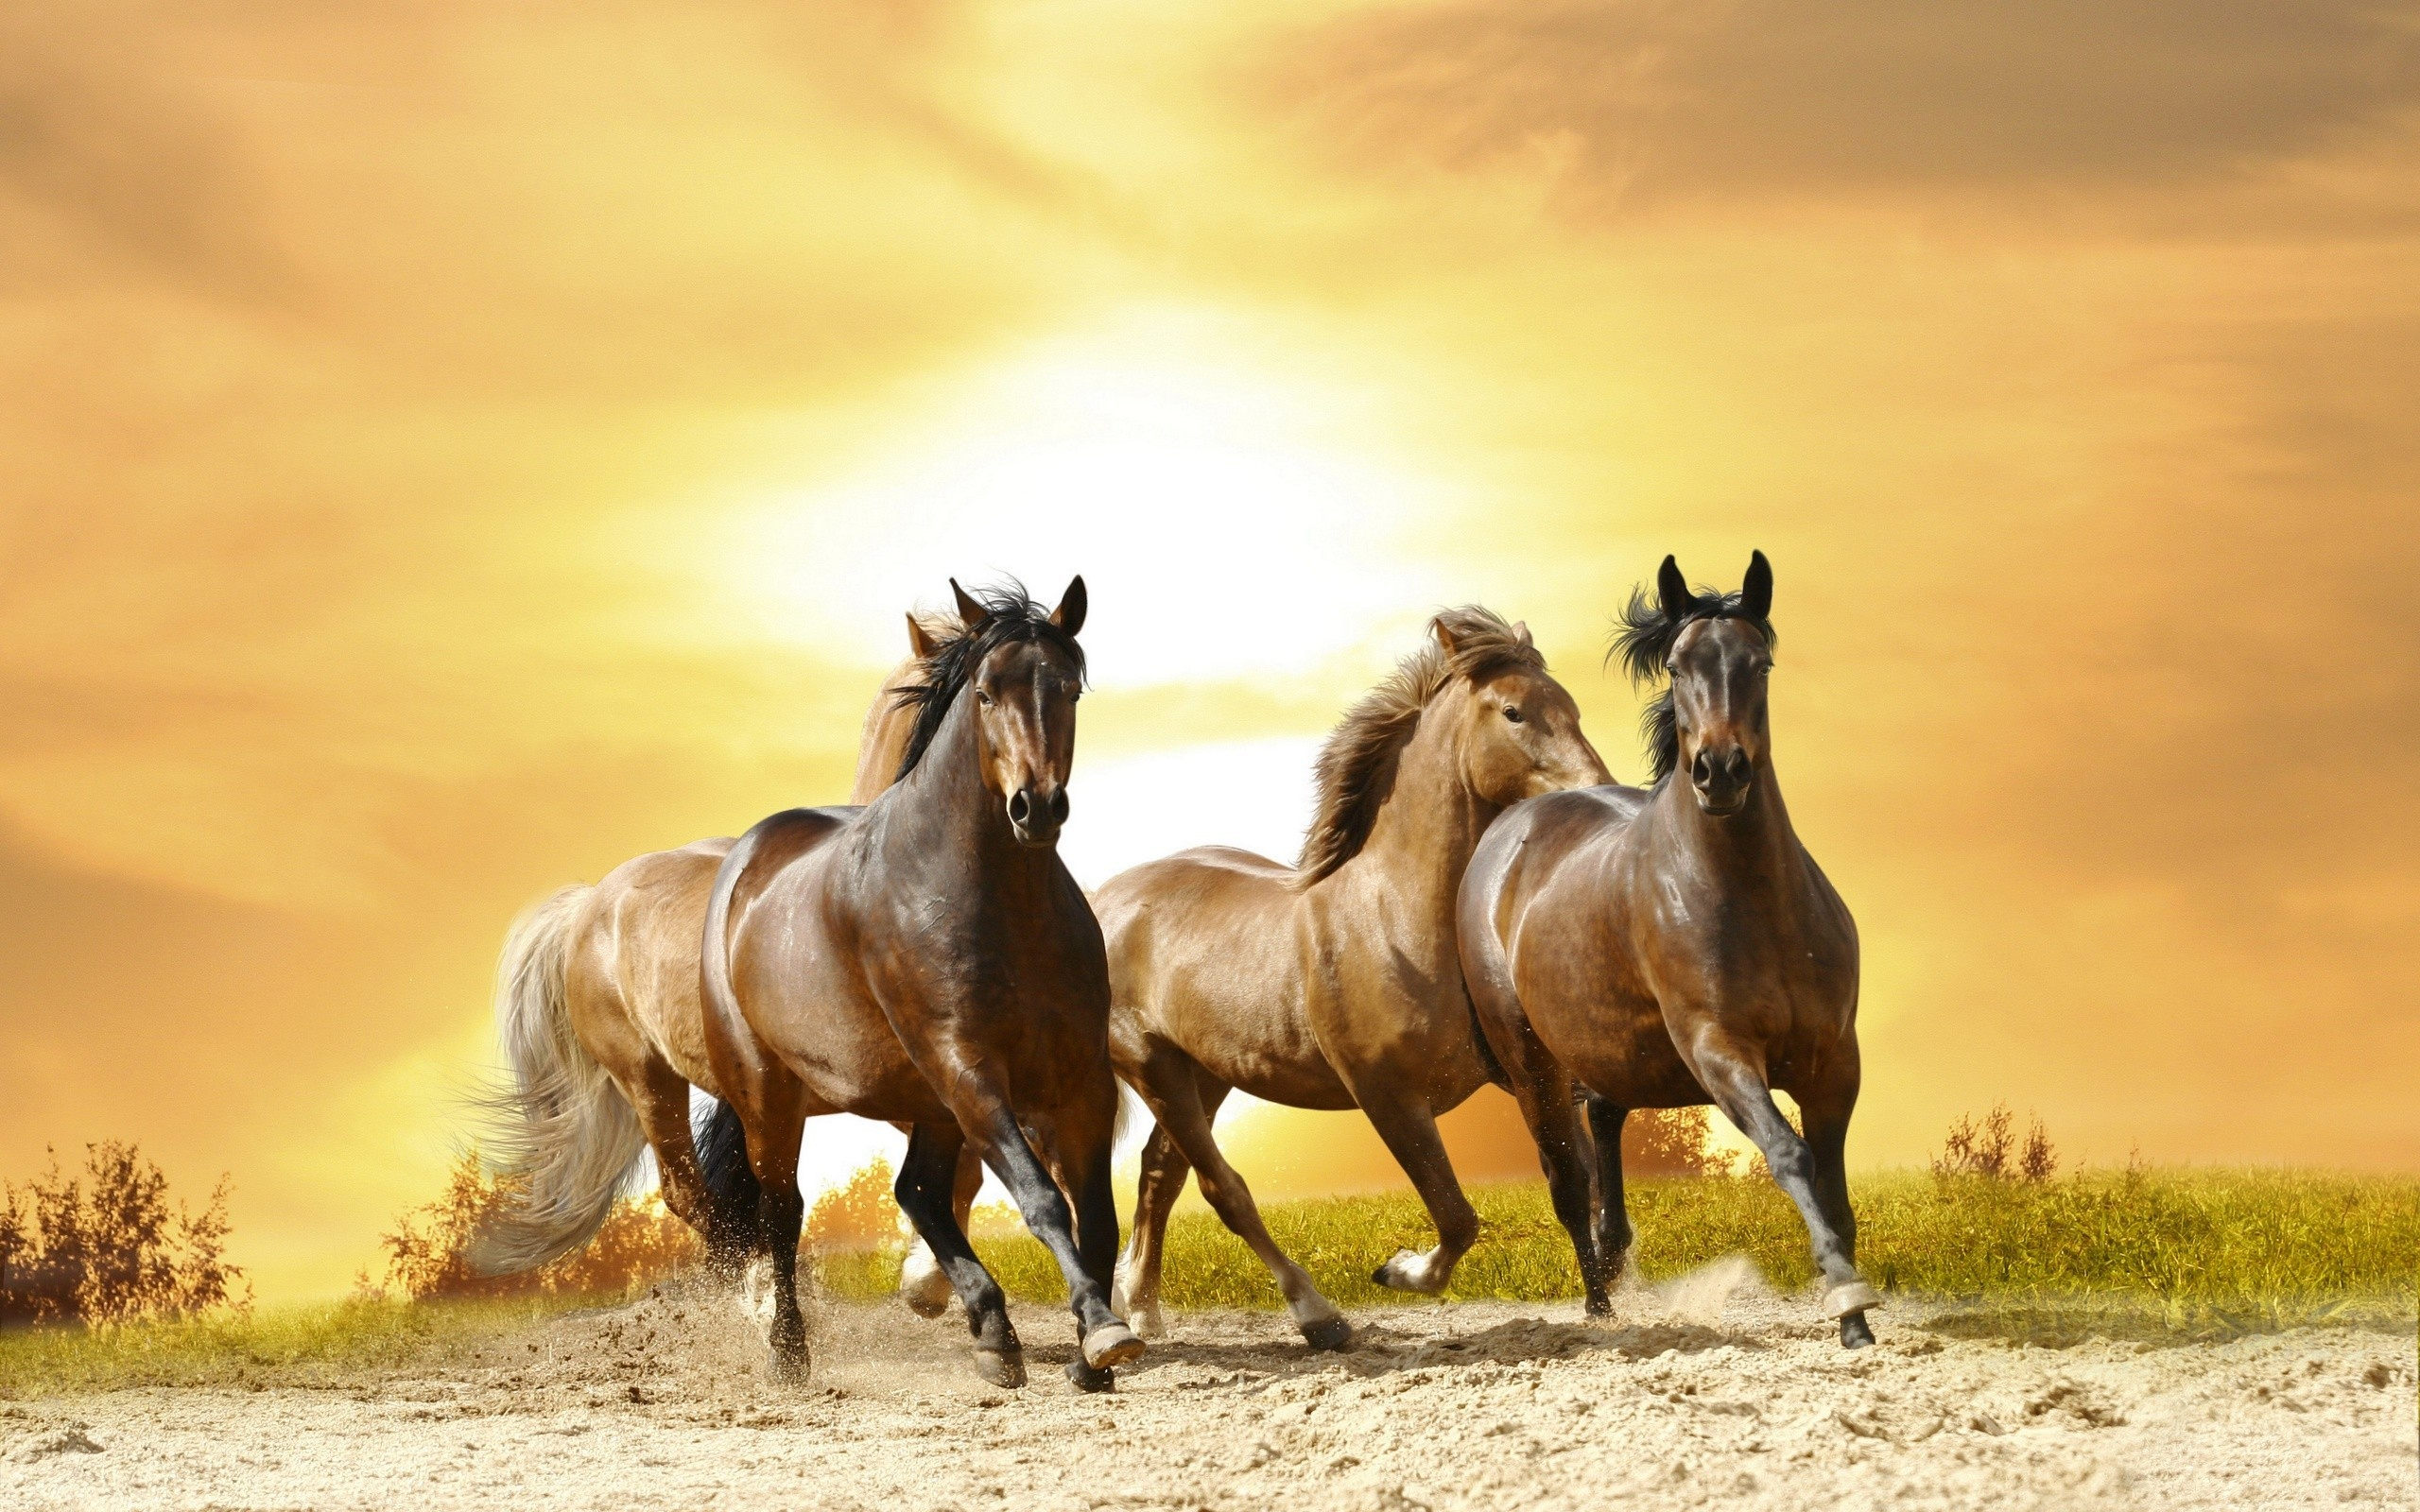 Res: 2560x1600, Horses: Horse Animals Stallion Wild Cool Wallpapers for HD 16:9 .